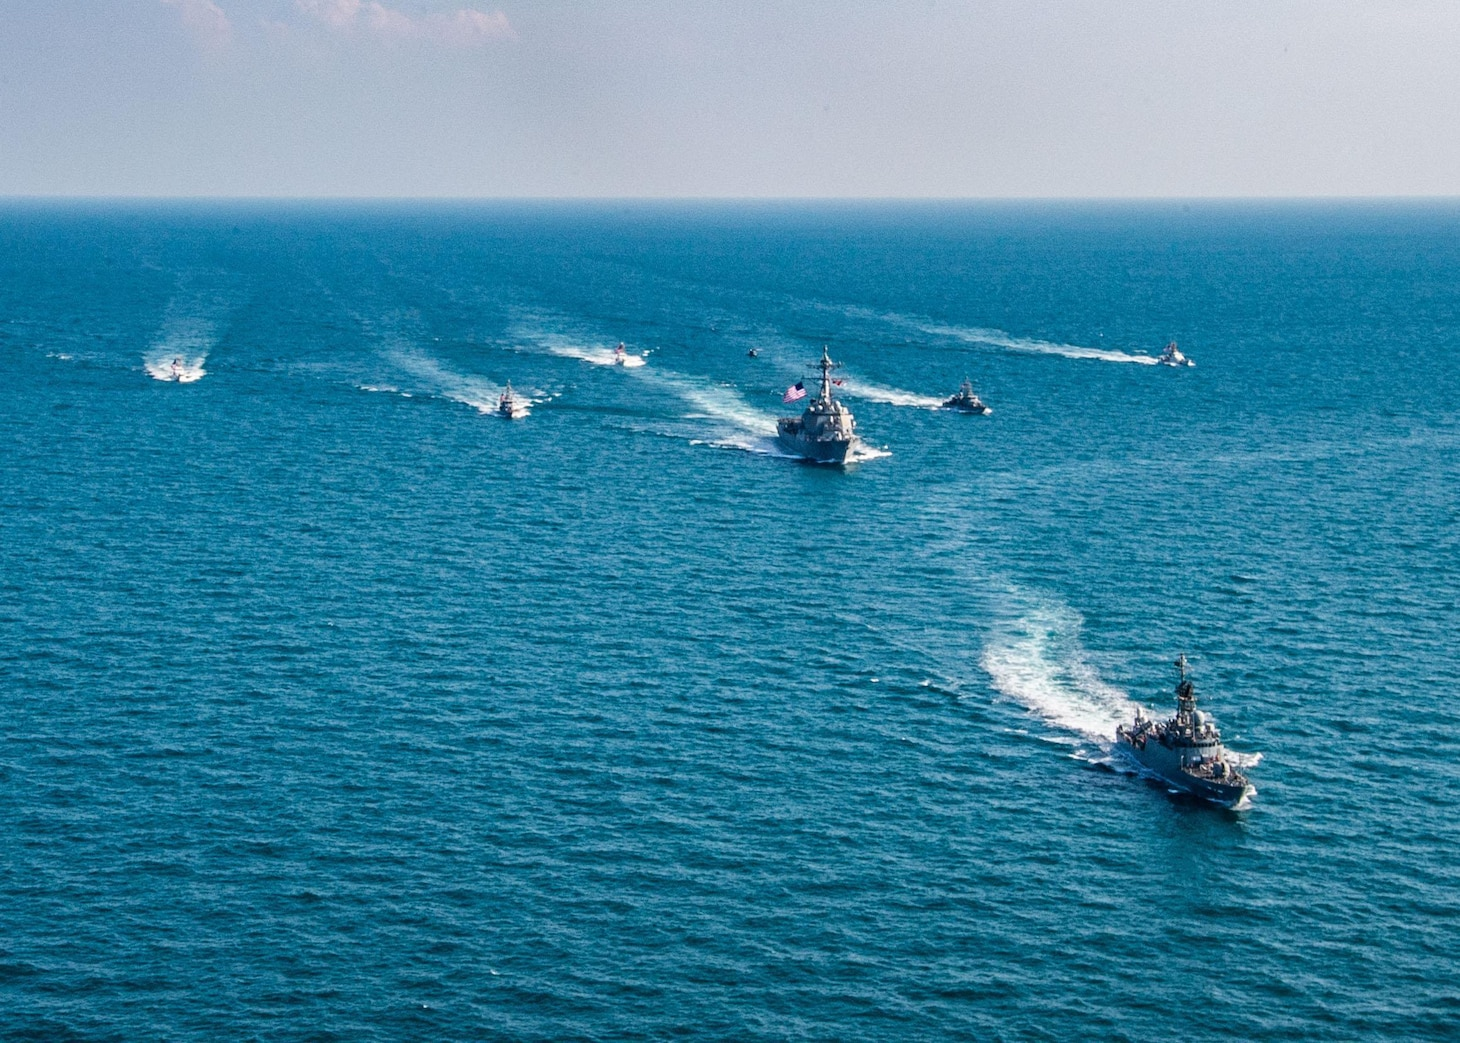 The Royal Saudi Naval Force corvette HMS Badr (612), front to back, the guided-missile destroyer USS Winston S. Churchill (DDG 81), center, Navy patrol coastal ships USS Squall (PC 7), USS Firebolt (PC 10), Coast Guard patrol boats USCGC Monomoy (WPB 1326), USCGC Maui (WPB 1304) and USCGC Wrangell (WPB 1332) transit the Arabian Gulf during the joint and combined air operations in support of maritime surface warfare (AOMSW) exercise in the Arabian Gulf, Dec. 17. Combined integration operations between joint U.S. forces are regularly held to maintain interoperability and the capability to counter threats posed in the maritime domain, ensuring freedom of navigation and free flow of commerce throughout the region's heavily trafficked waterways.